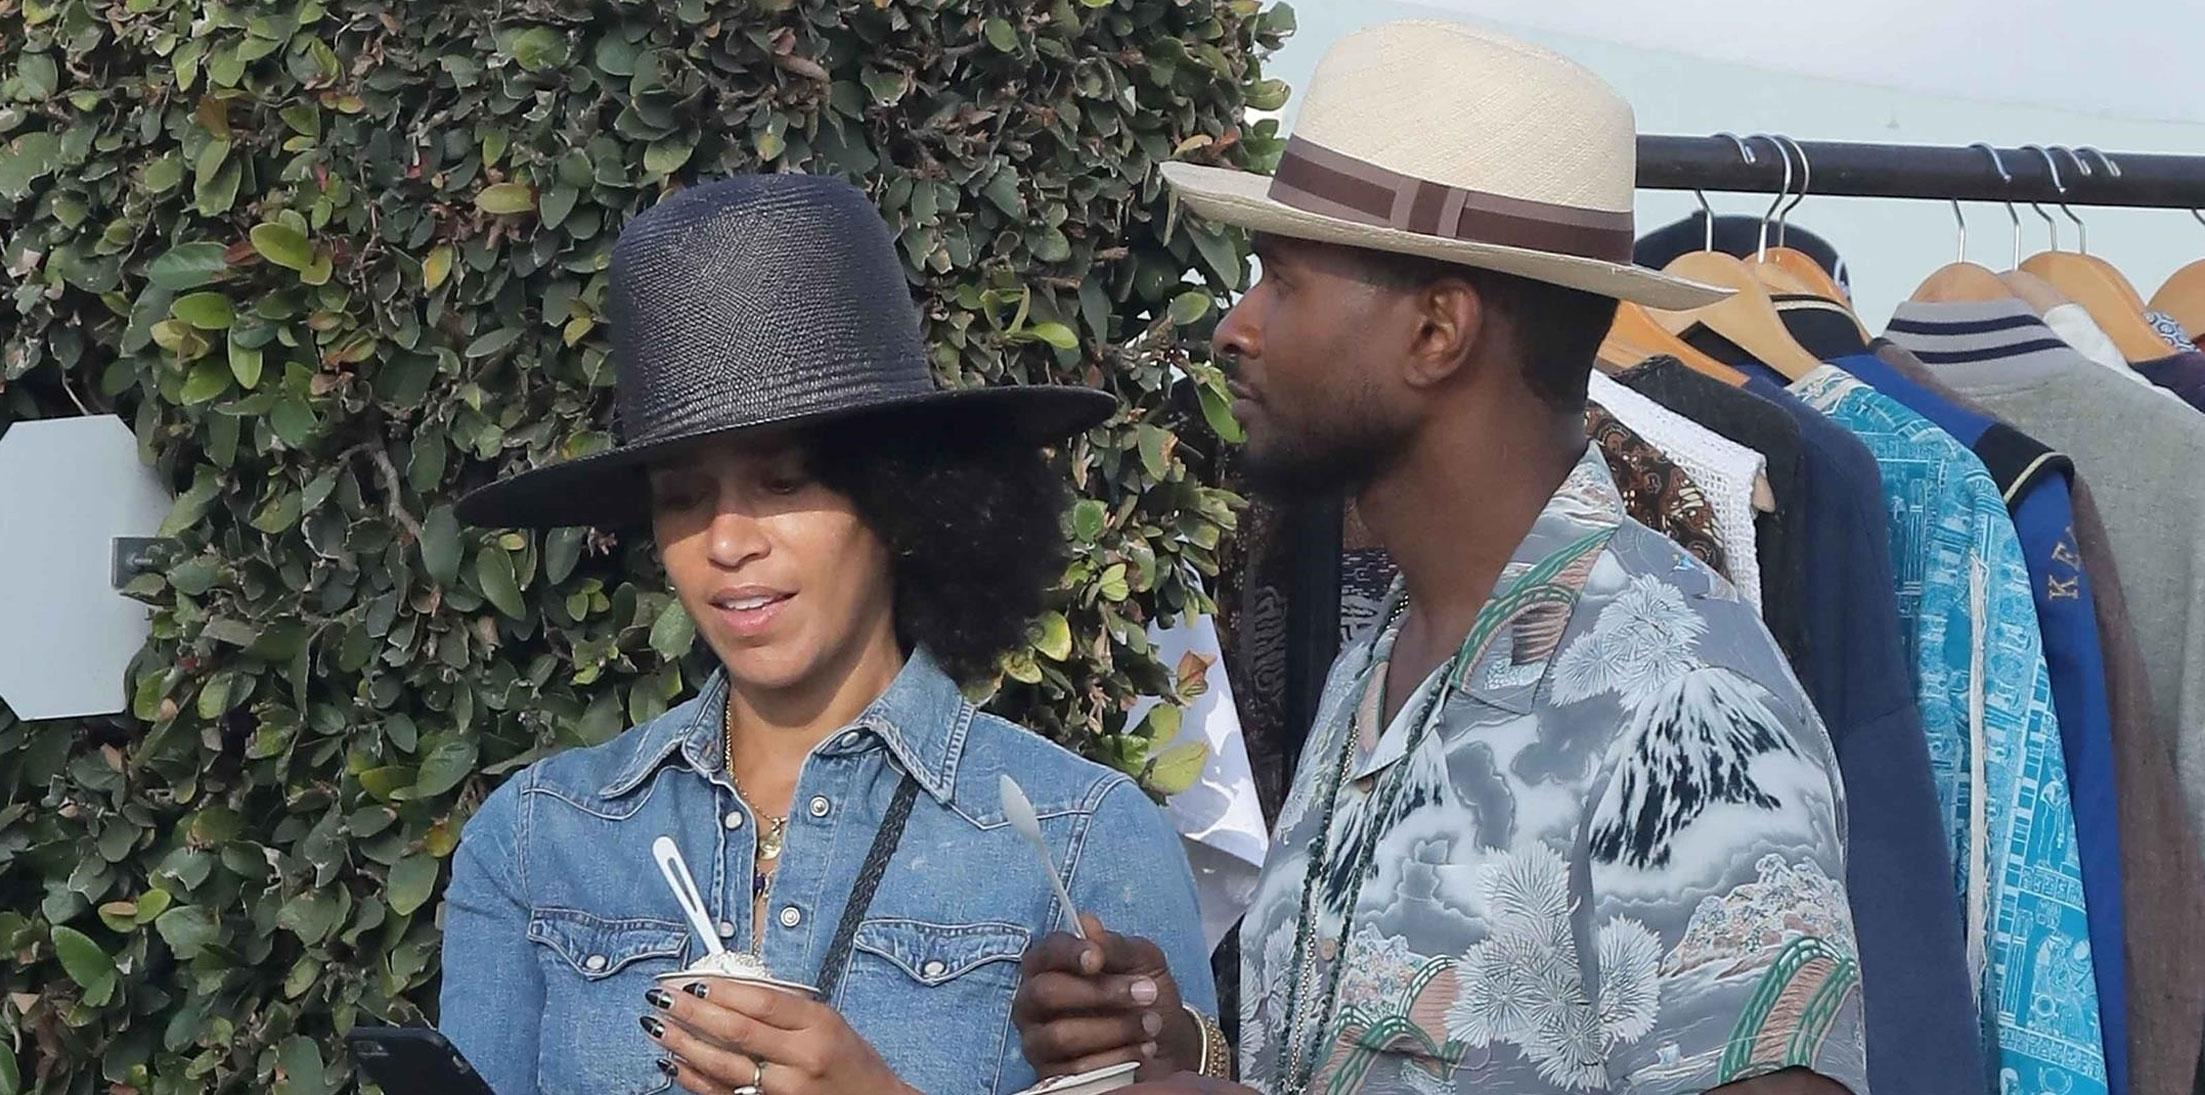 usher wife grace miguel unite herpes allegations pics long